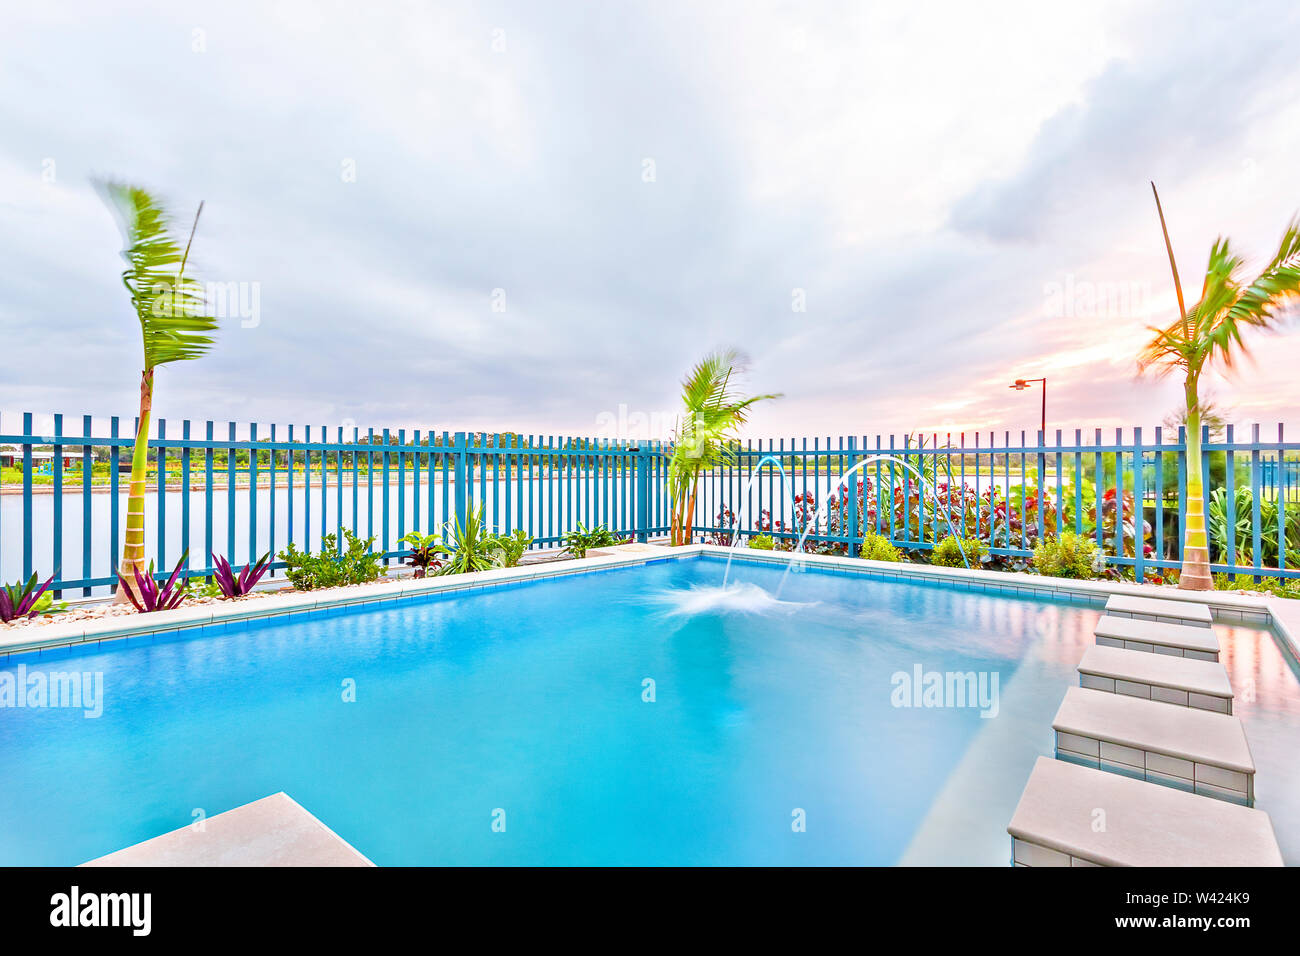 Swimming pool with blue color water and sky, garden with green trees arround the ground, sky is very attractive with sunset, evening time scene. - Stock Image